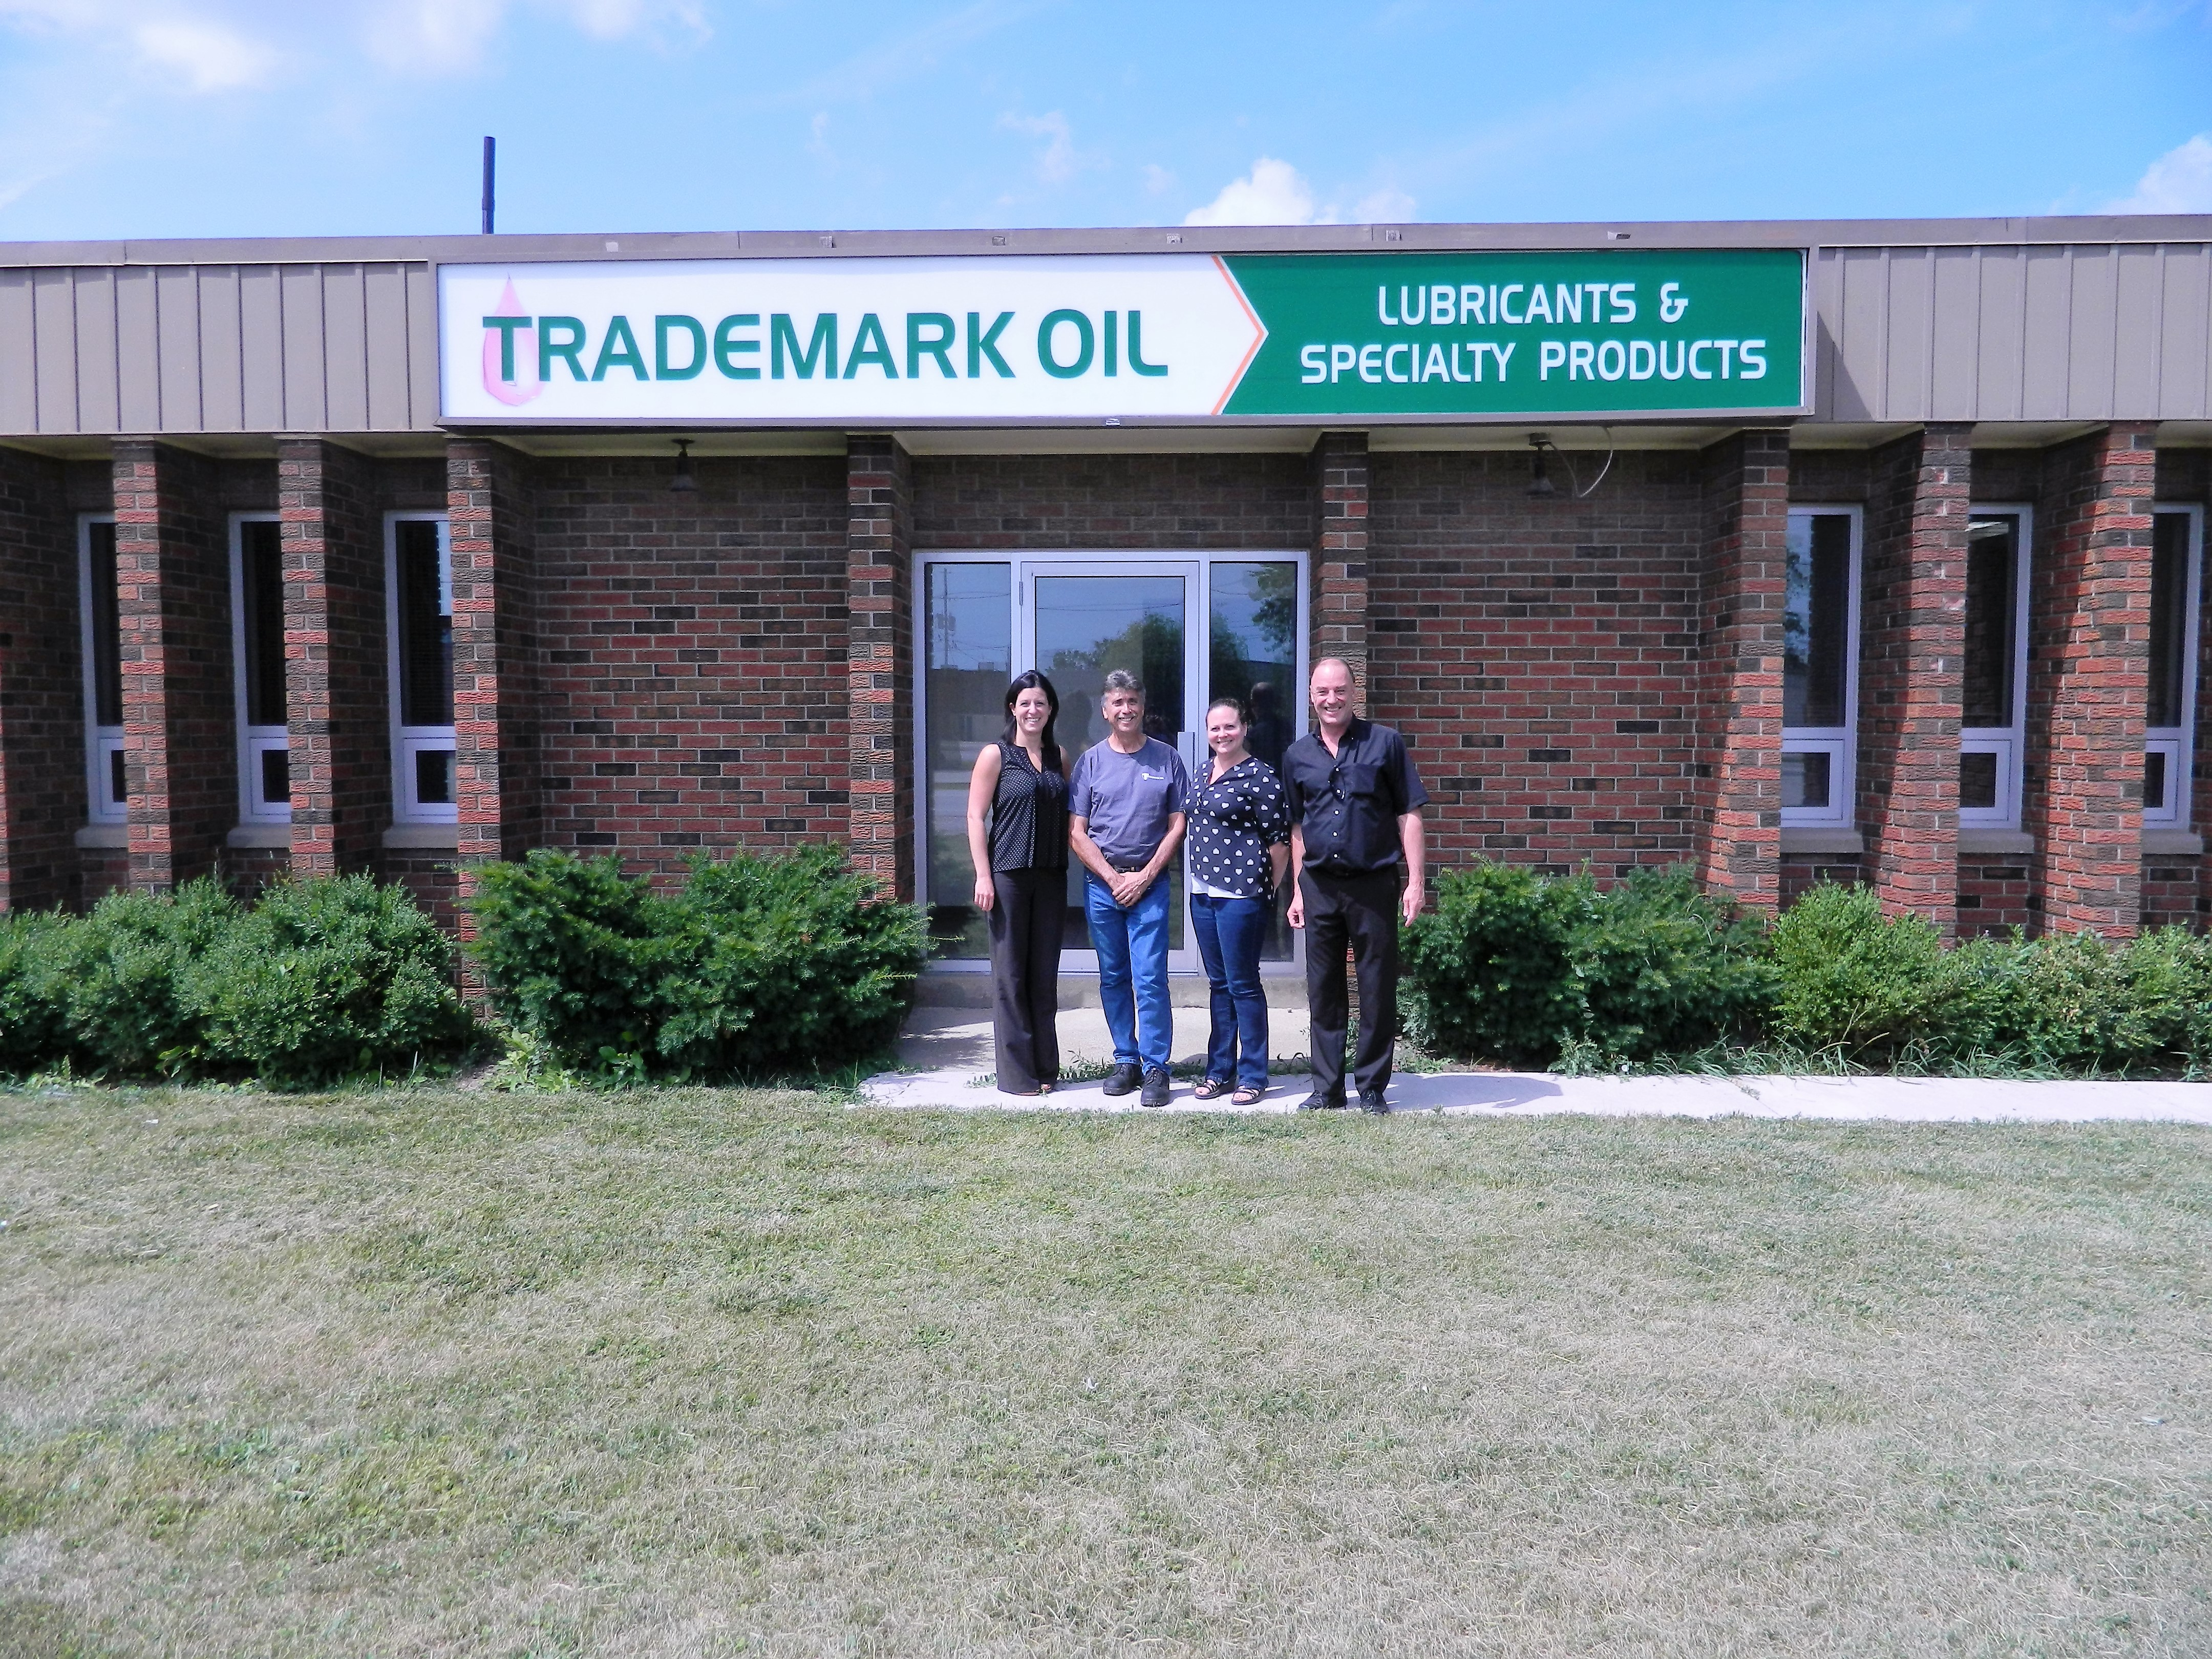 CREVIER GROUP ACQUIRES TRADEMARK OIL   Crevier Group